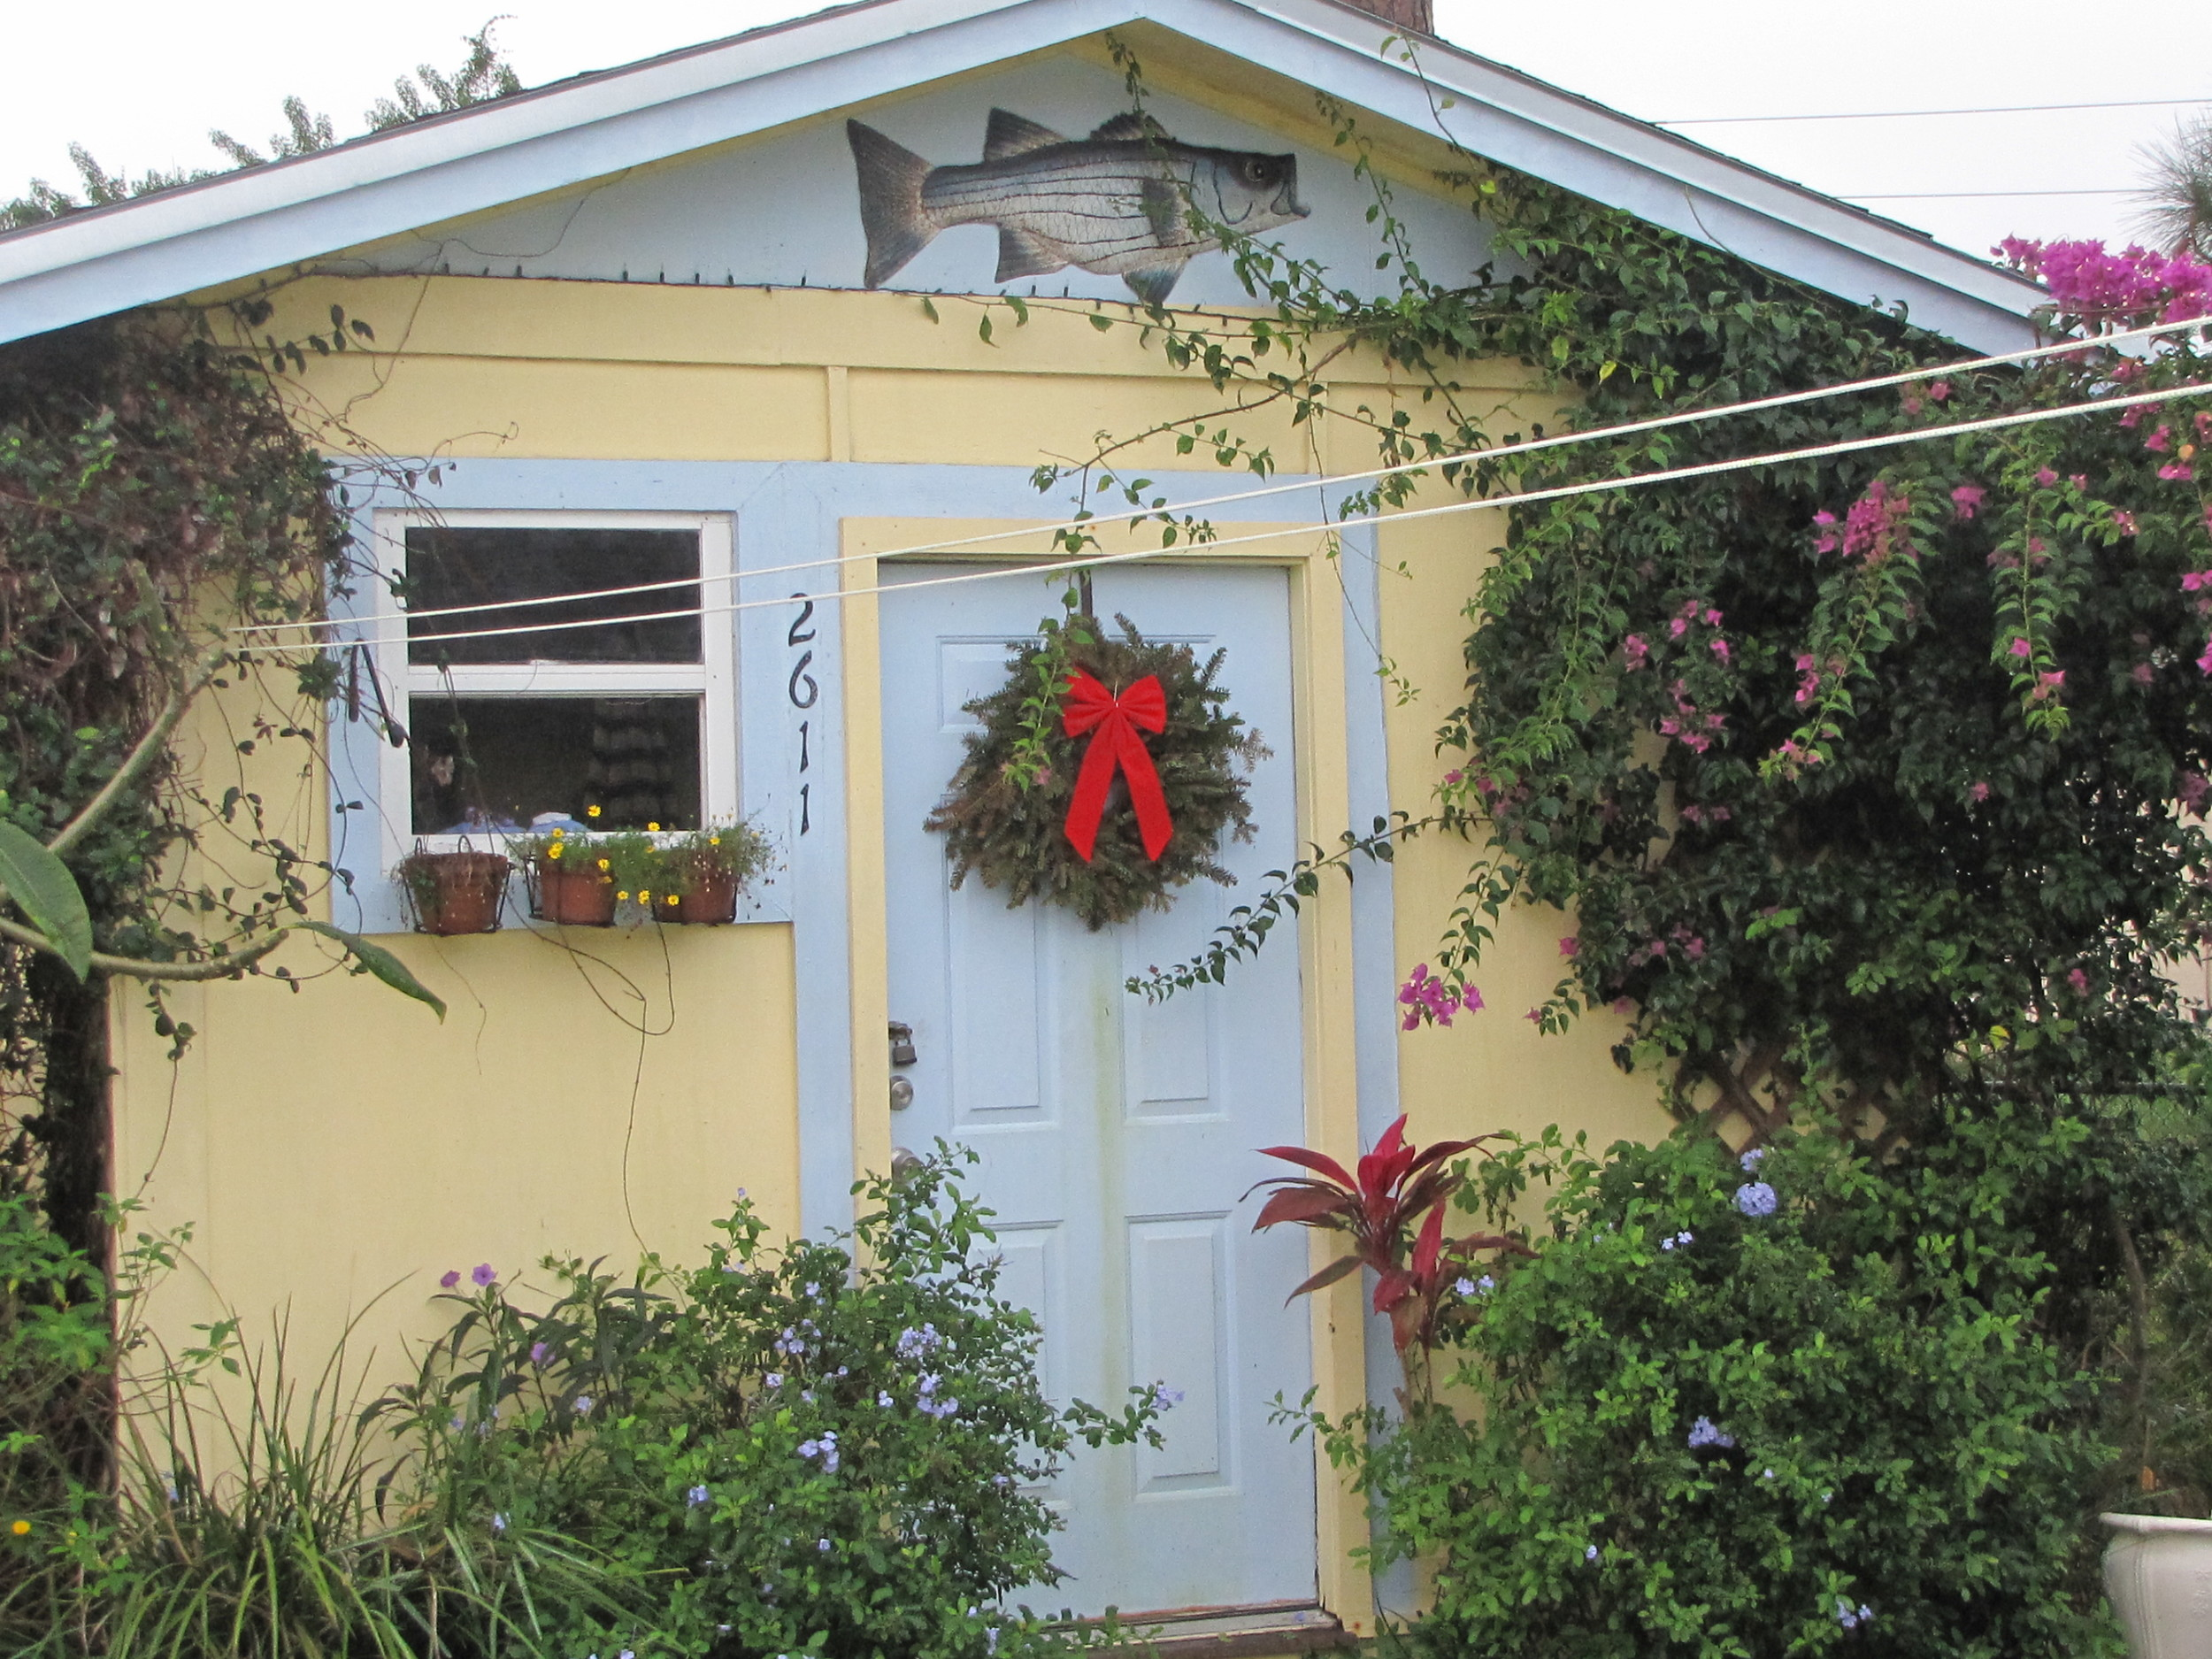 The little shed at Christmastime...